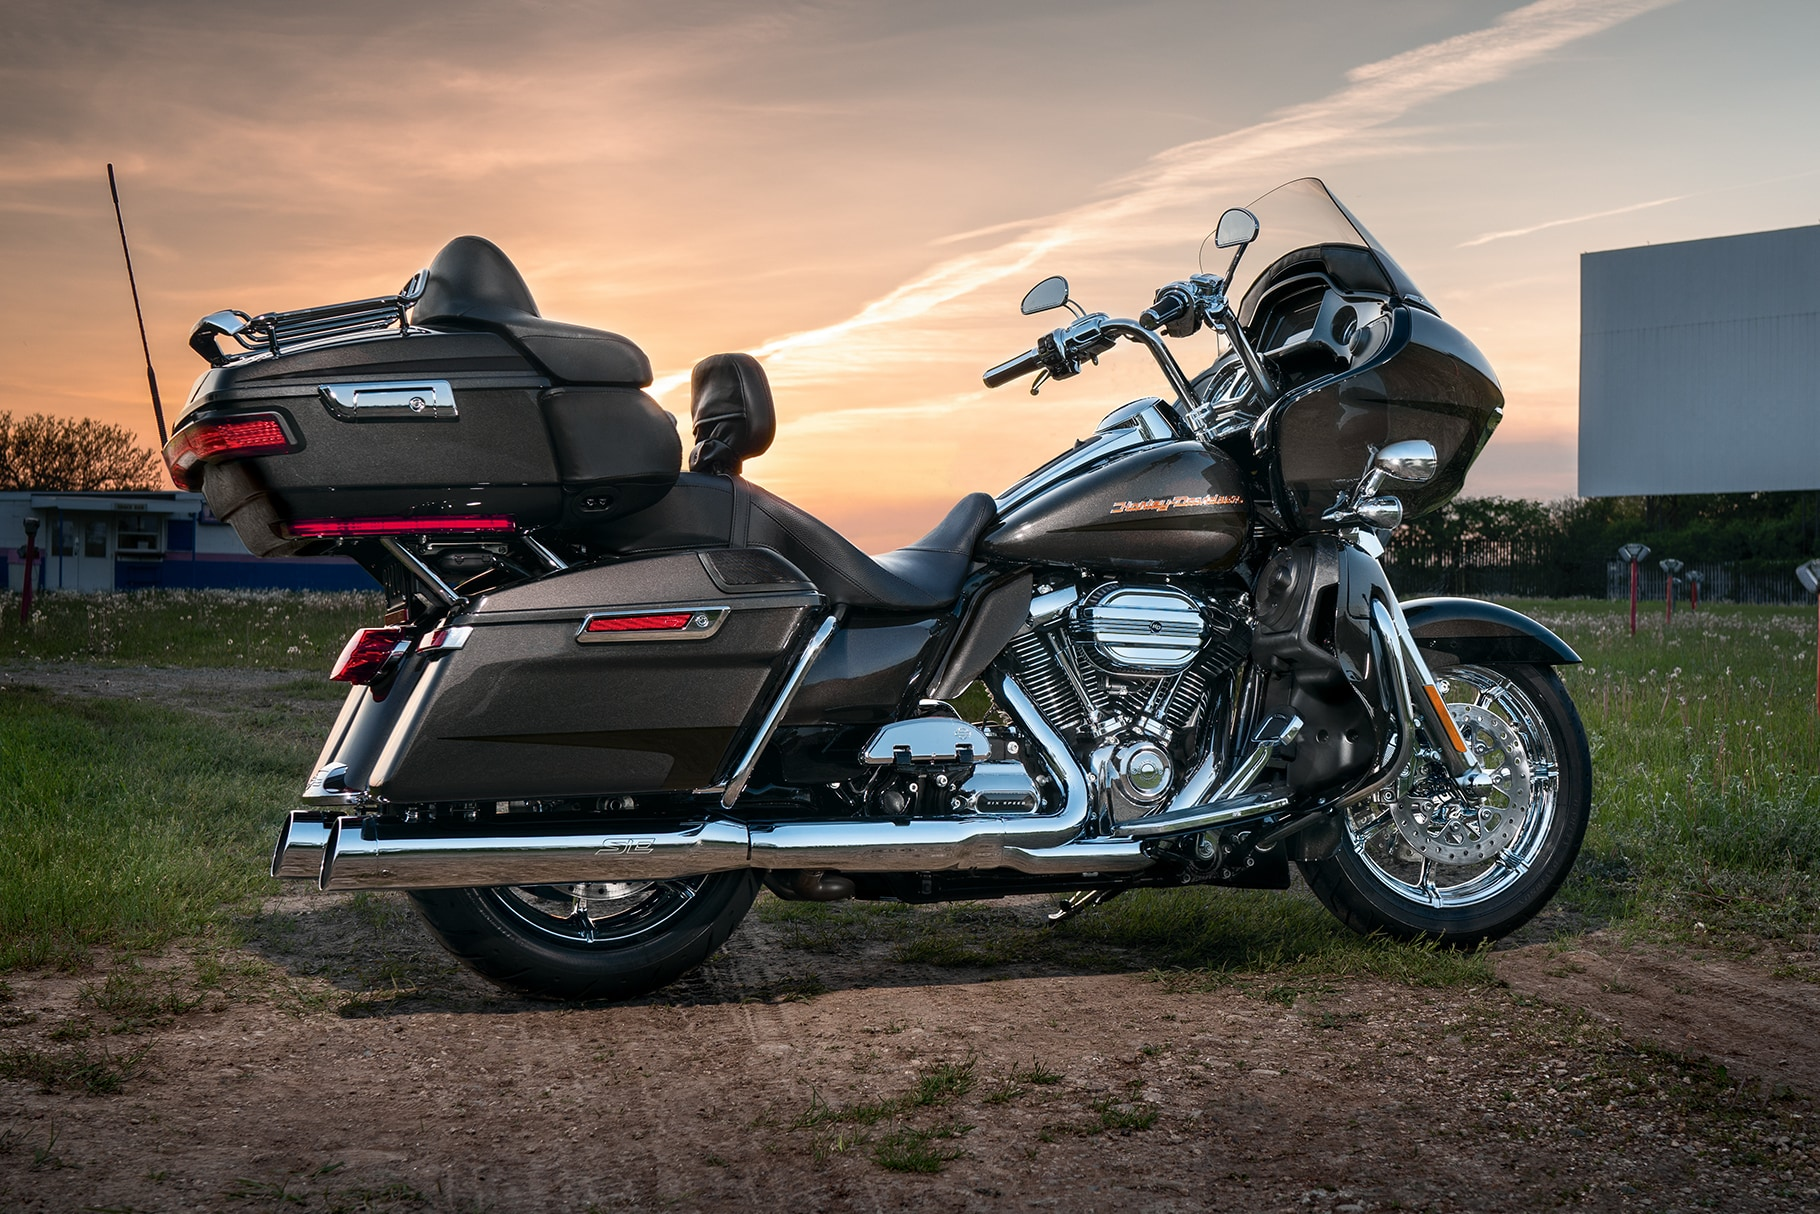 2019 Road Glide Ultra Motorcycle